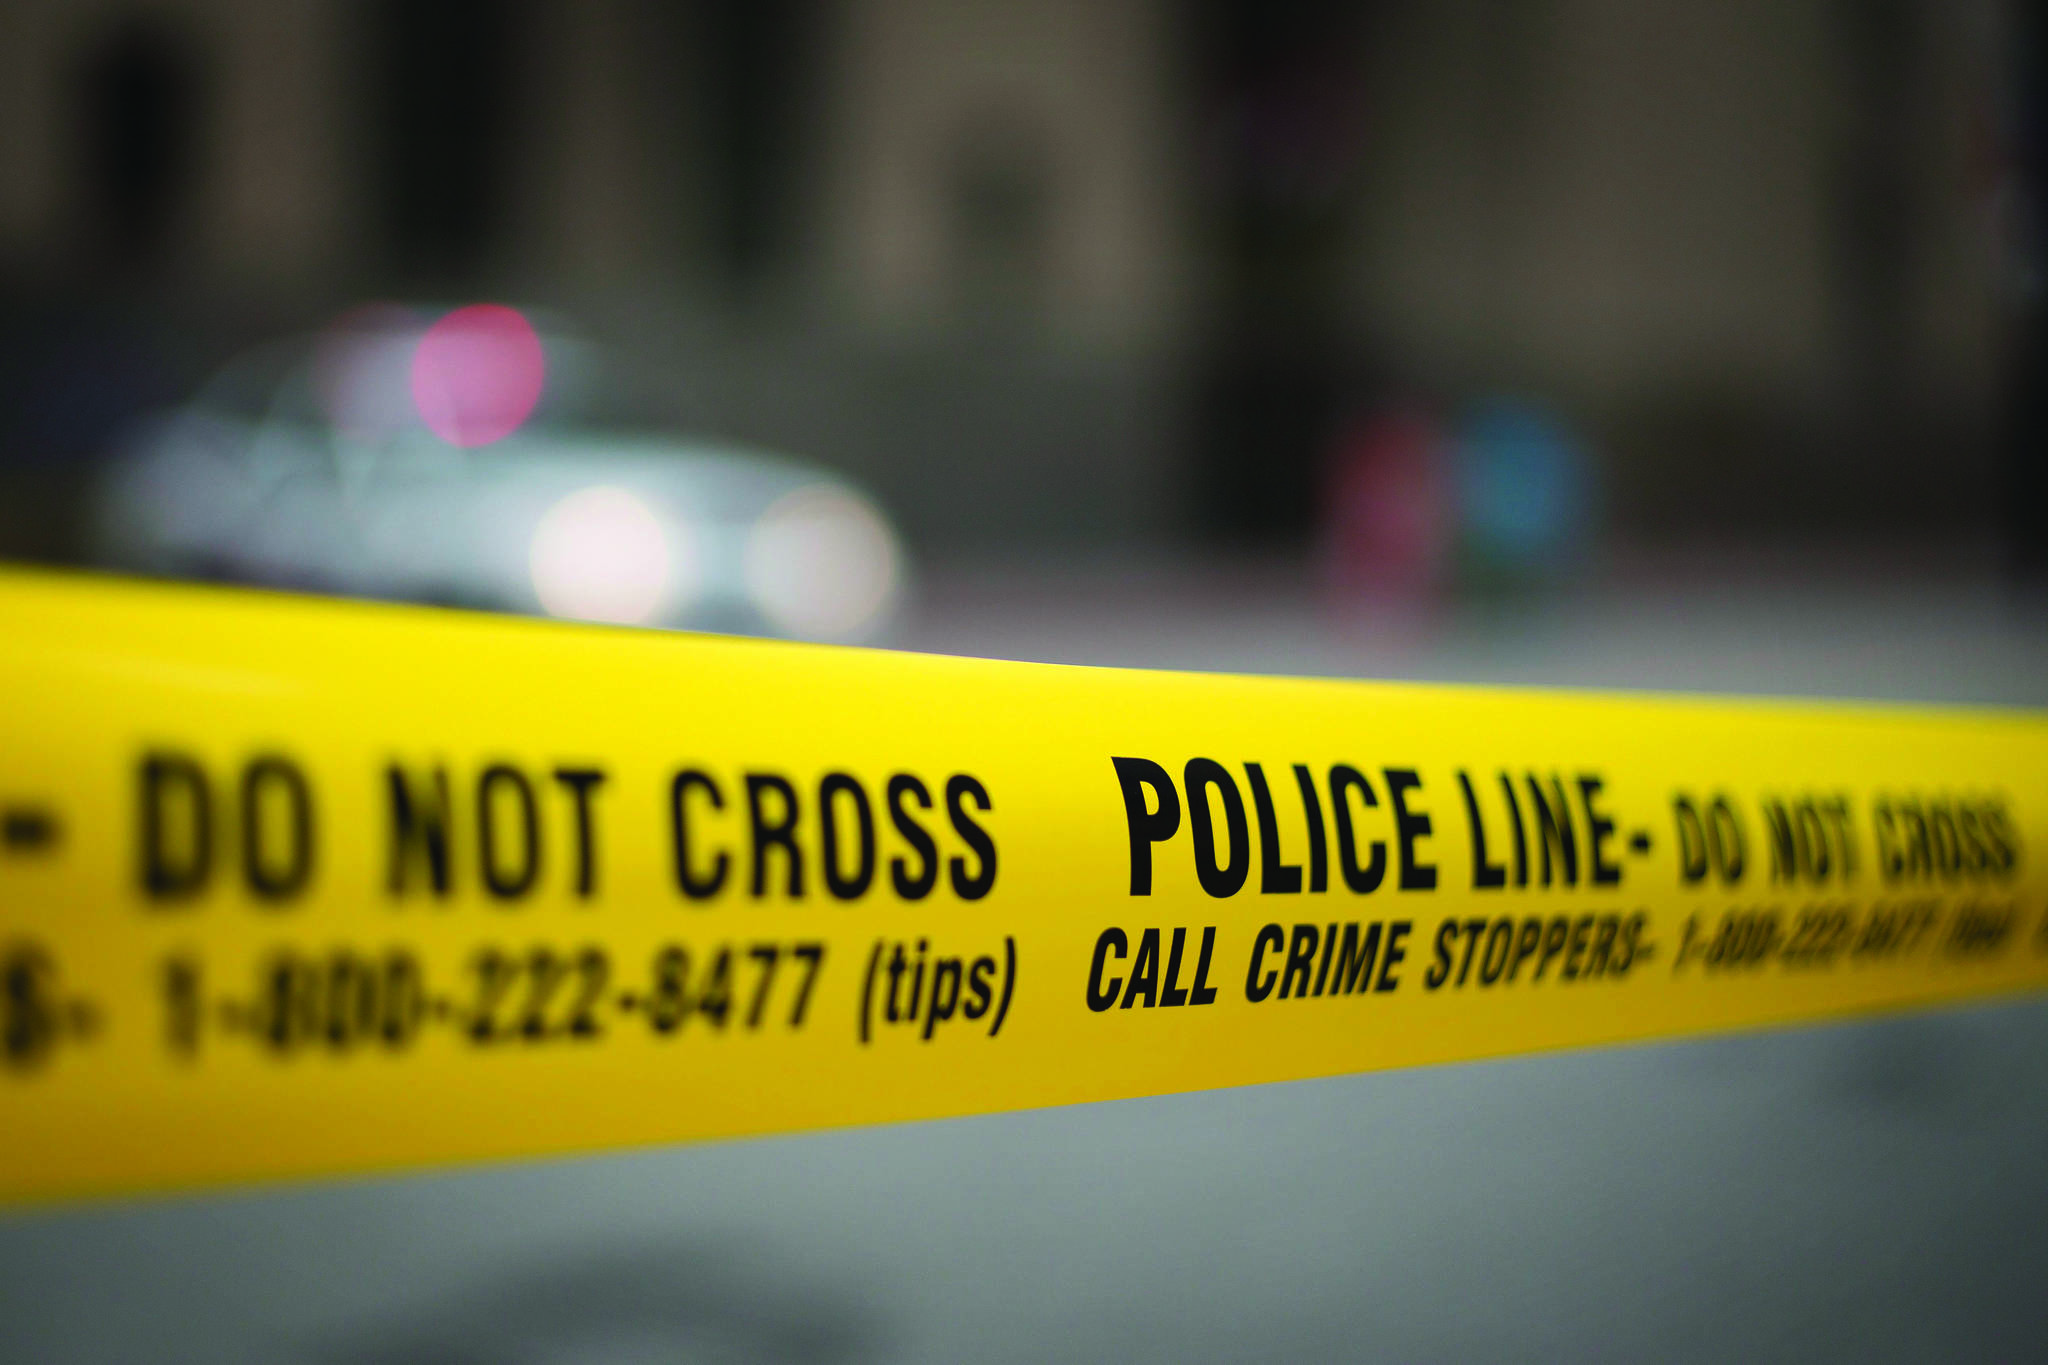 Investigators from the Vancouver Police Department were in Chilliwack Saturday, collecting evidence connected to a double homicide. (file photo)